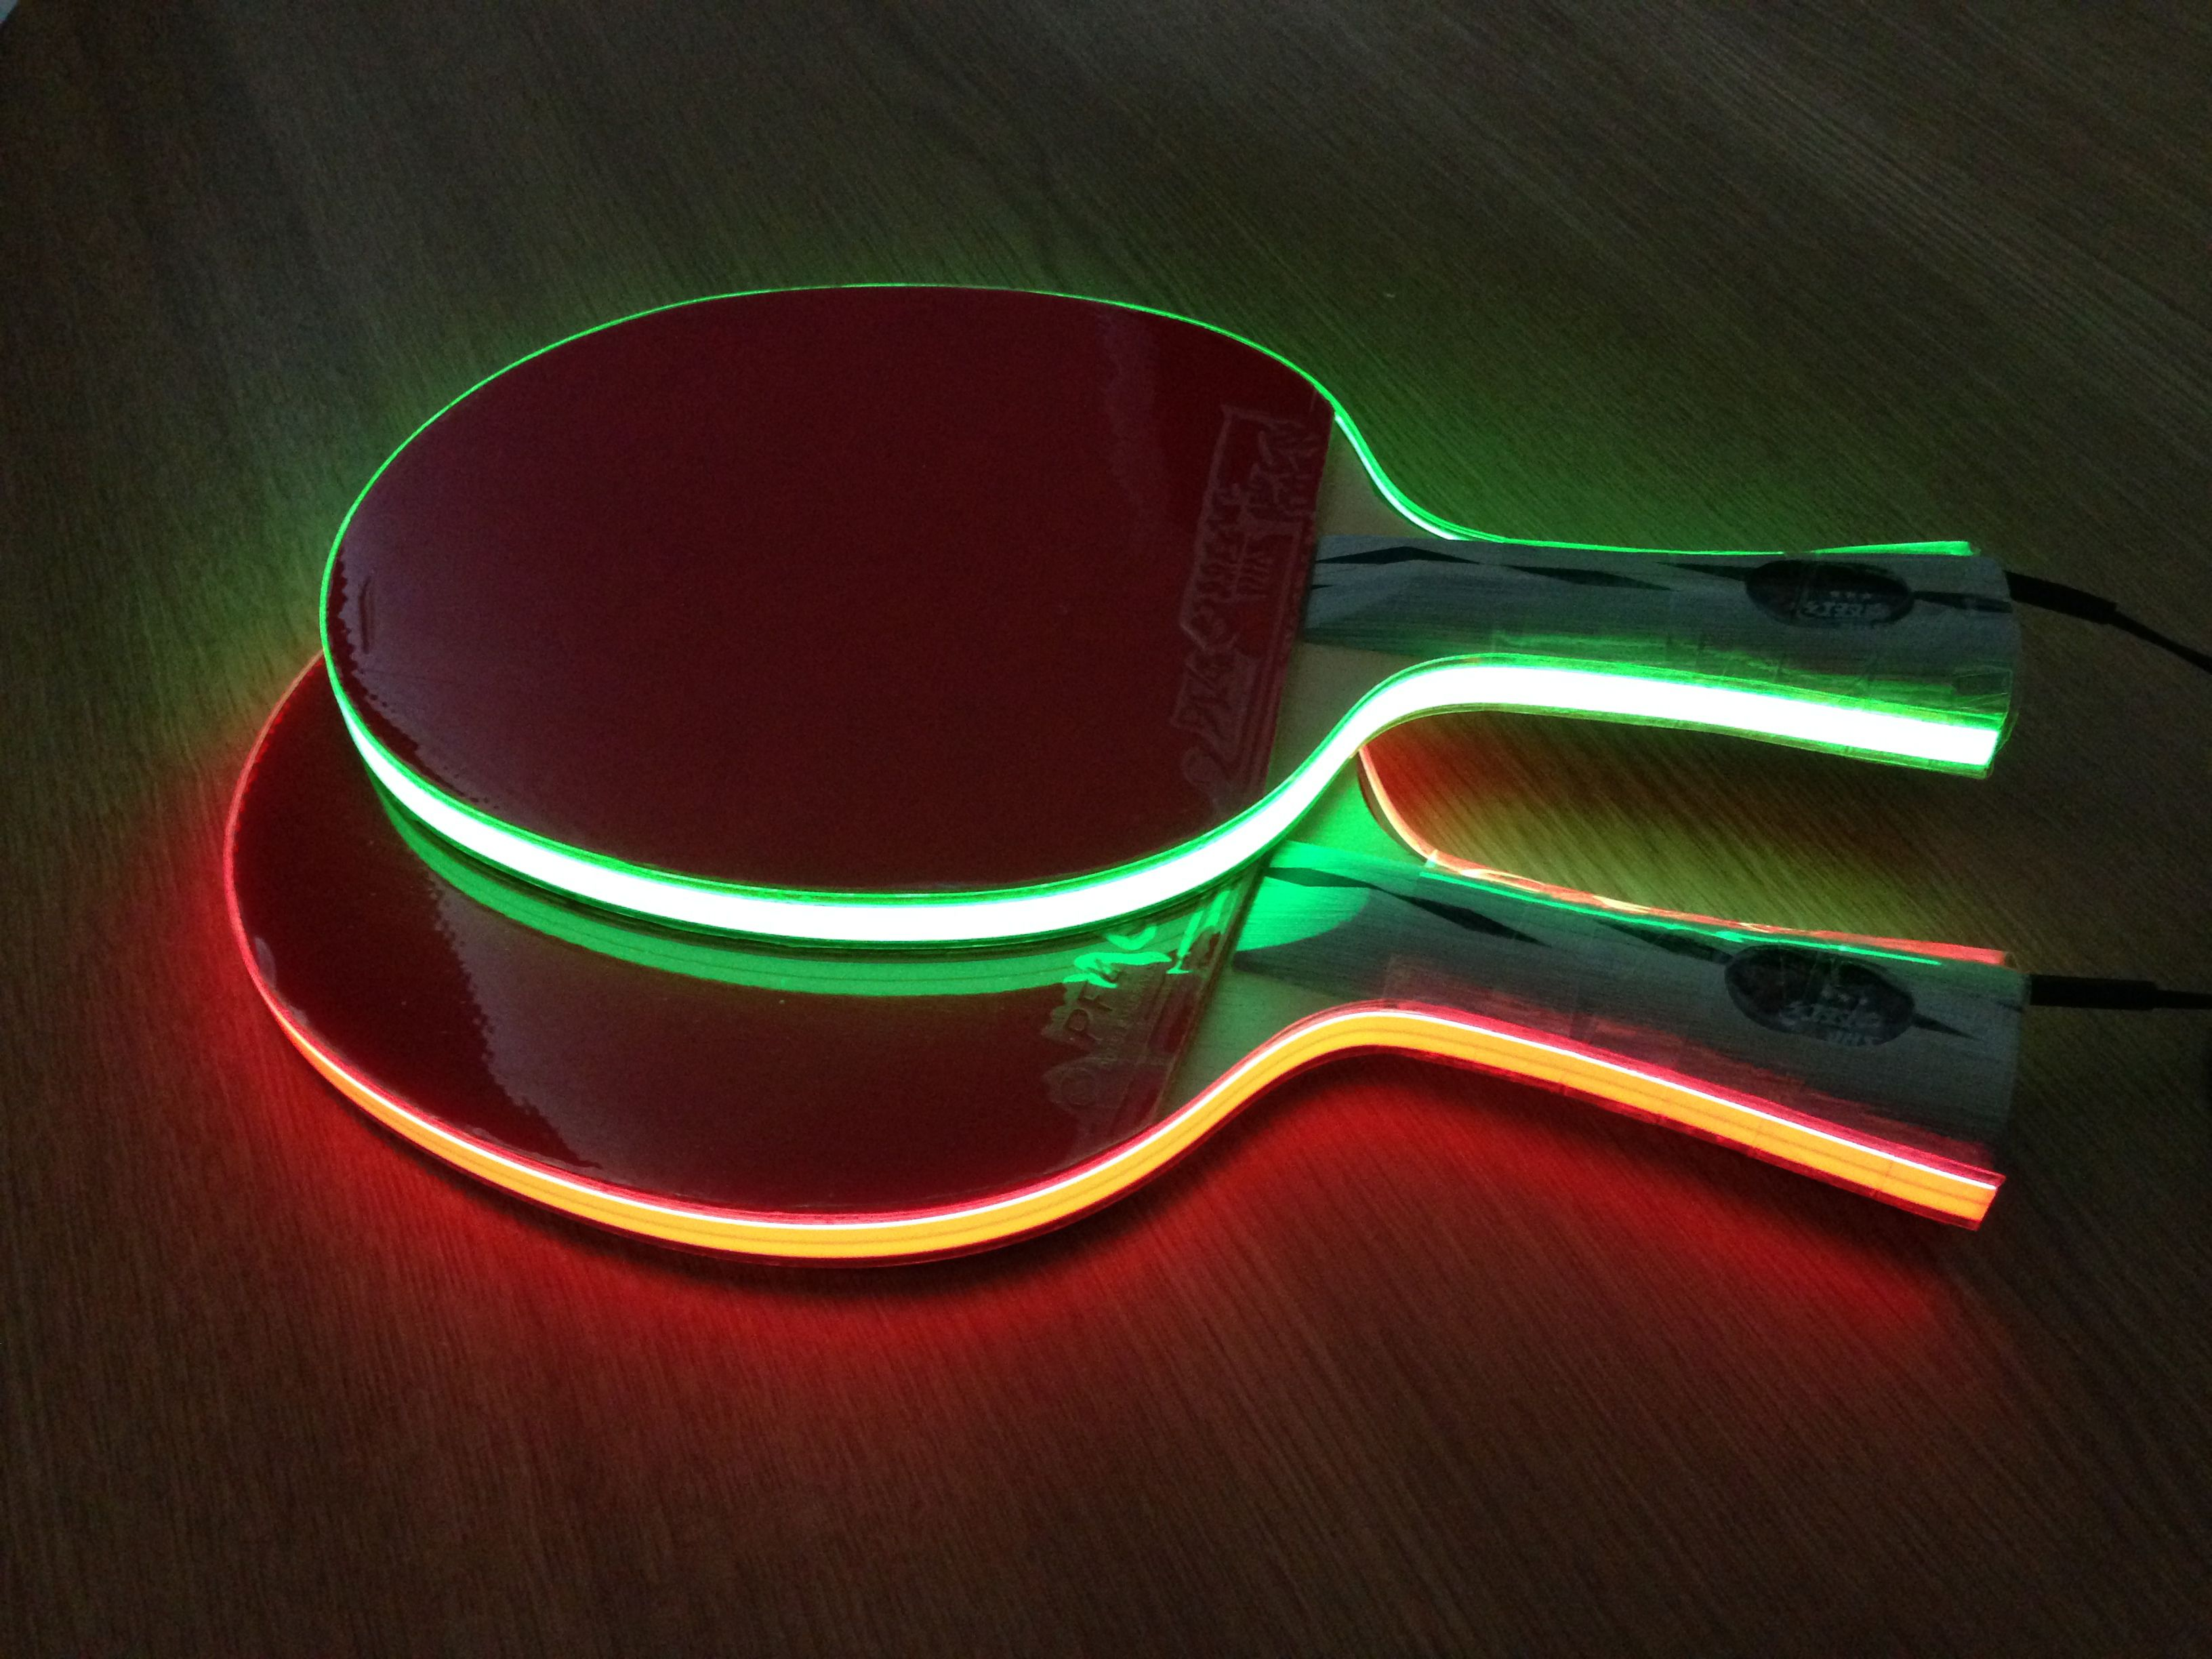 Mesa De Ping Pong Chile Ping Pong Paddle Buying Guide 2017 2018 Reviews Top 5